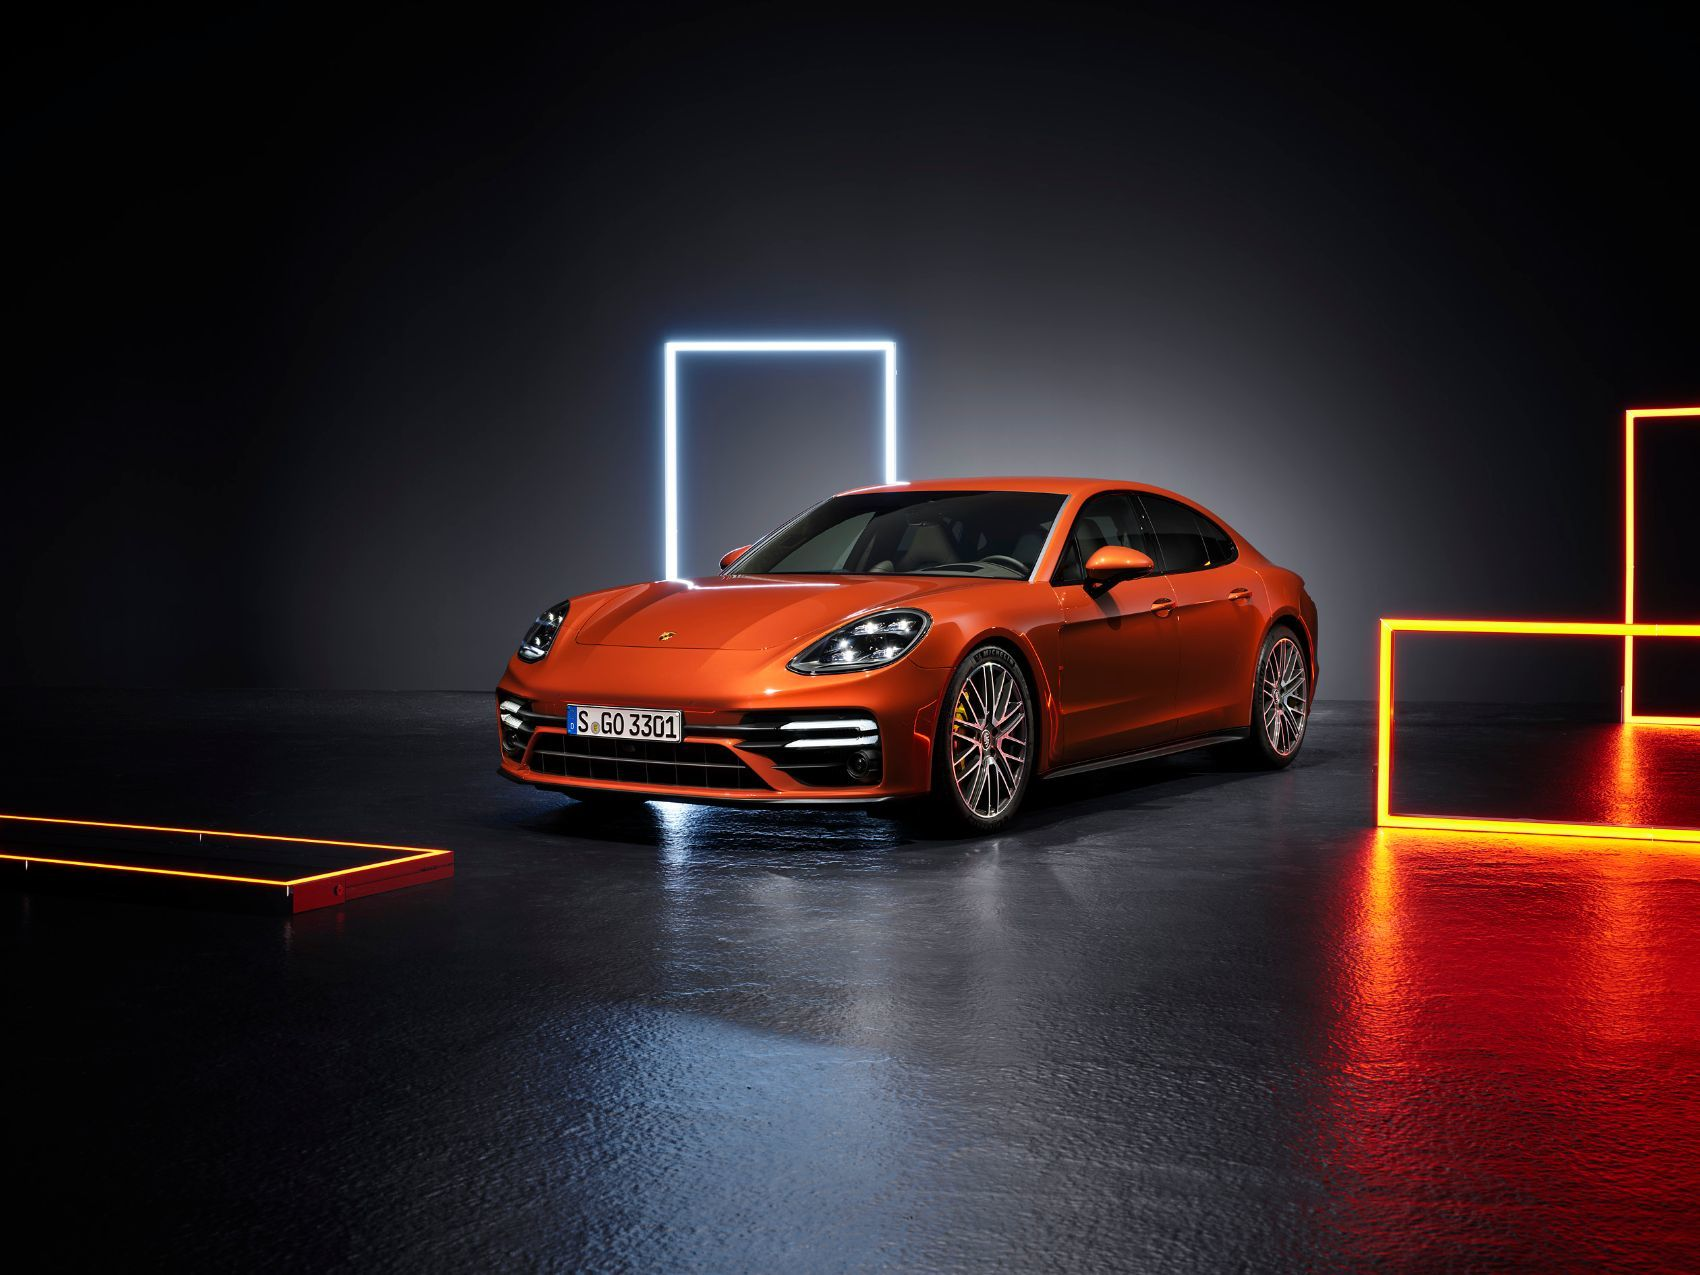 2021 Porsche Panamera: A Comprehensive Look At Porsche's New Executive Car.